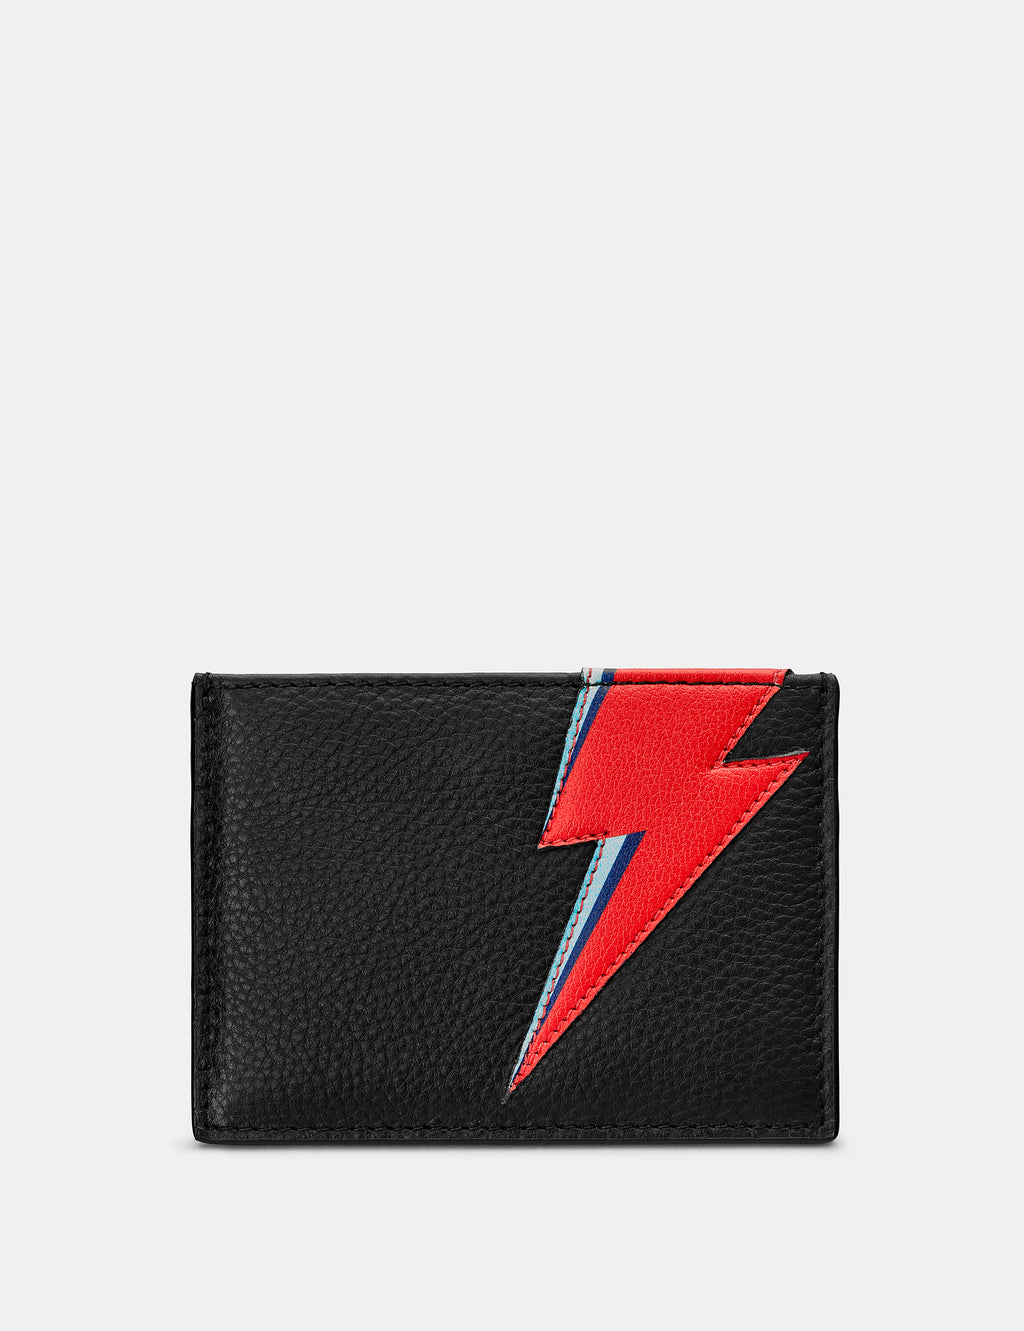 Lightning Bolt Black Leather Card Holder